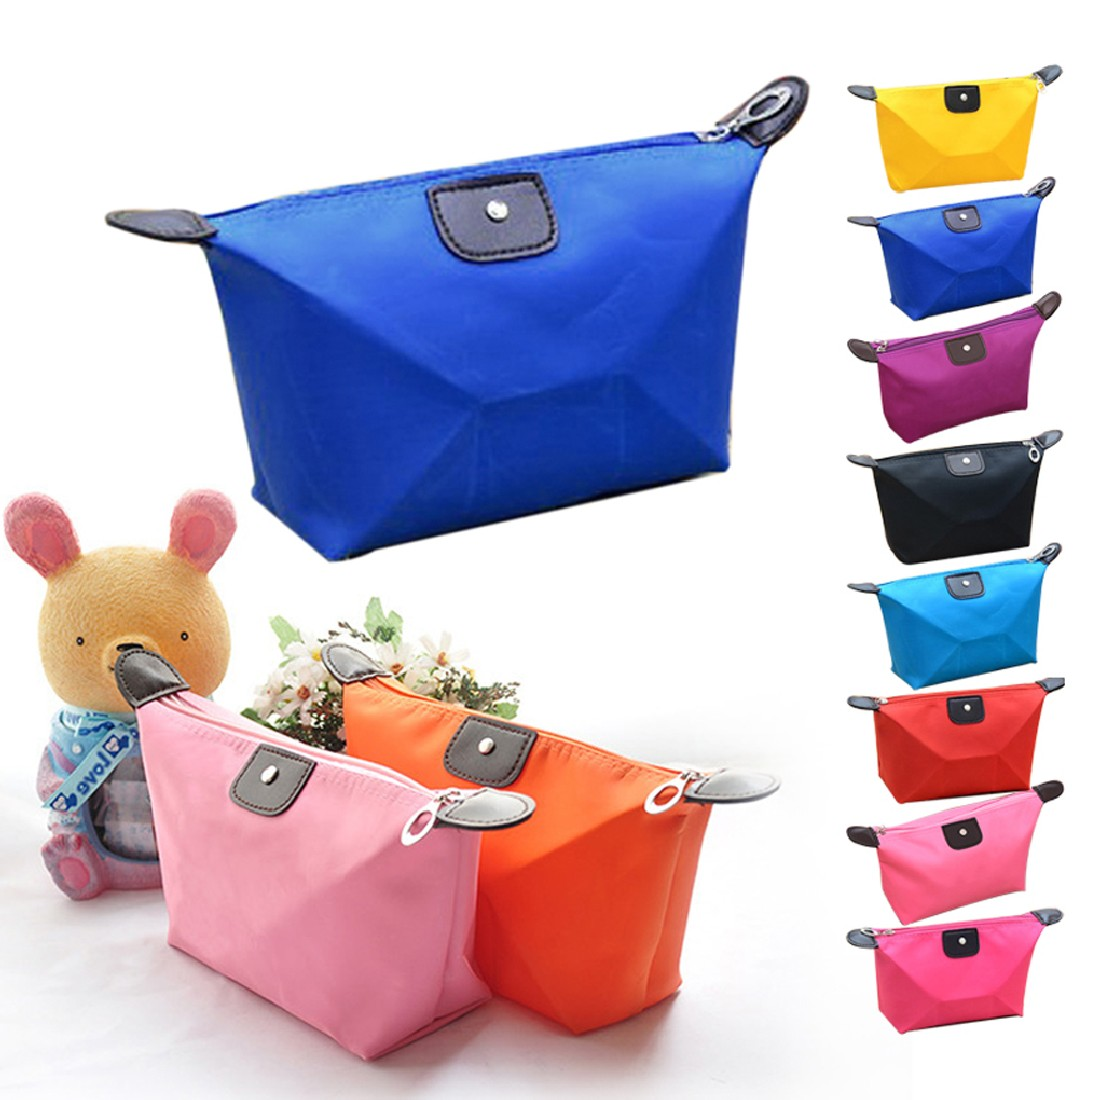 Great Useful WomenS Pouch Bag Handbag Travel Make Up Cosmetic Purse Zipper Holder Organiser Storage Toiletry